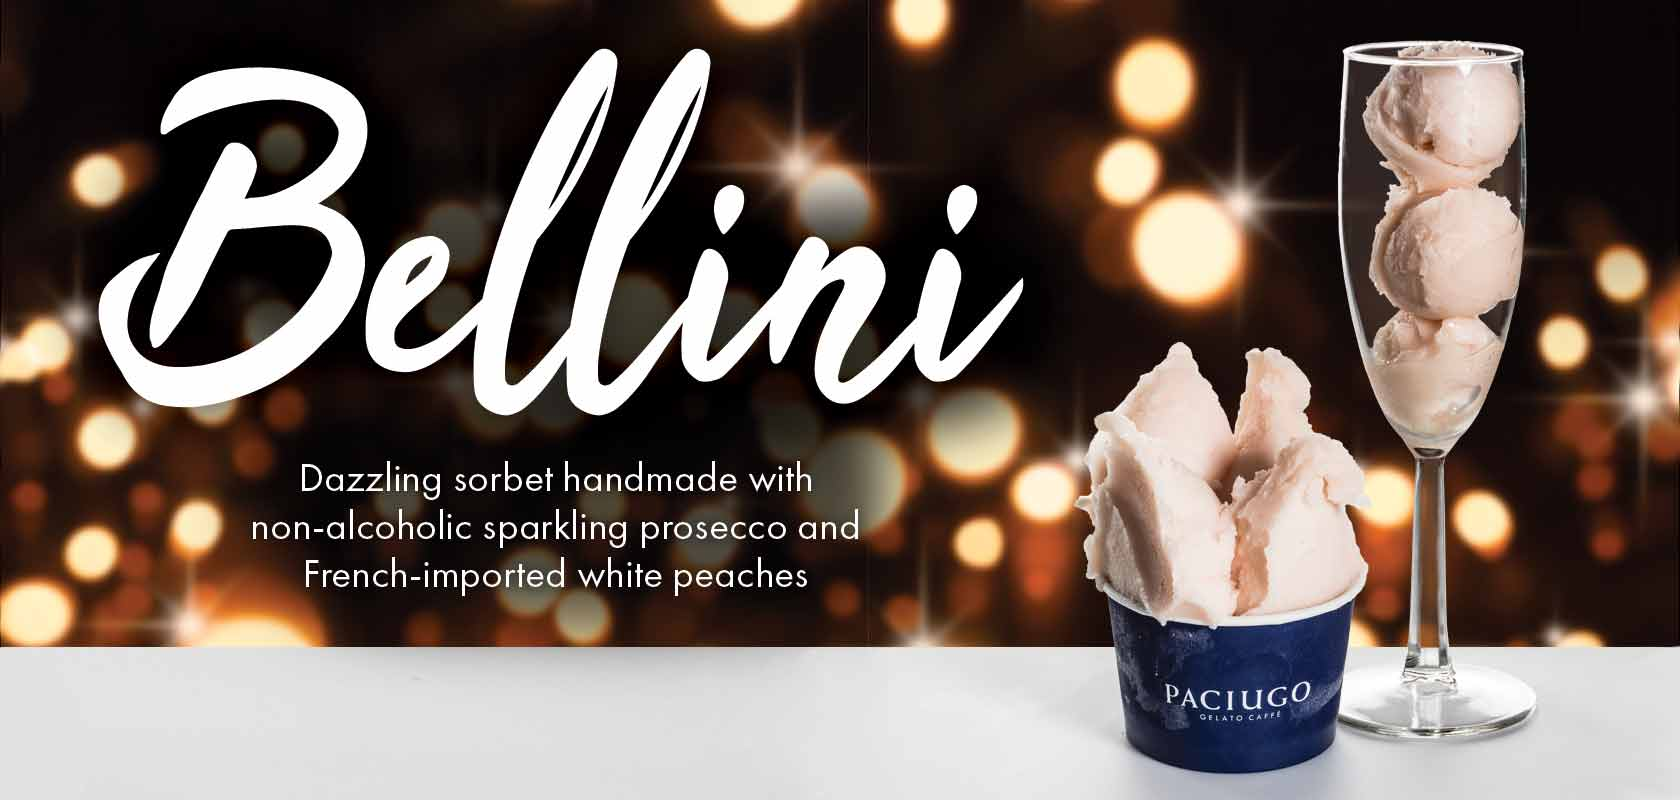 Try our Bellini! It's a dazzling sorbet handmade with non-alcoholic sparkling Prosecco and French-imported white peaches.